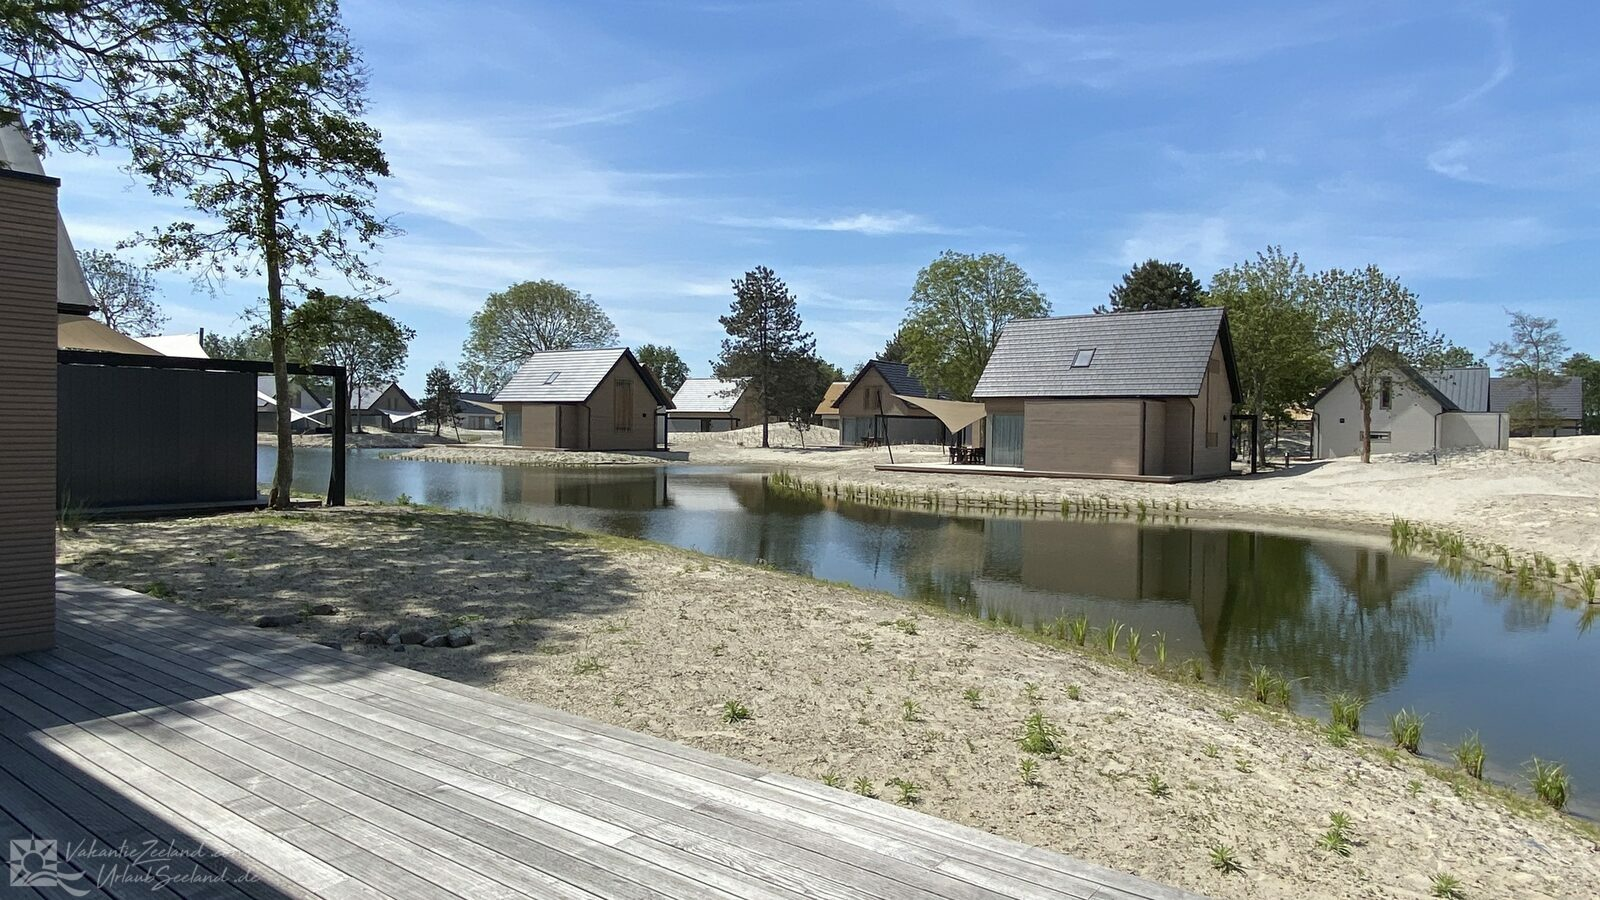 VZ846 Luxury holiday home Ouddorp